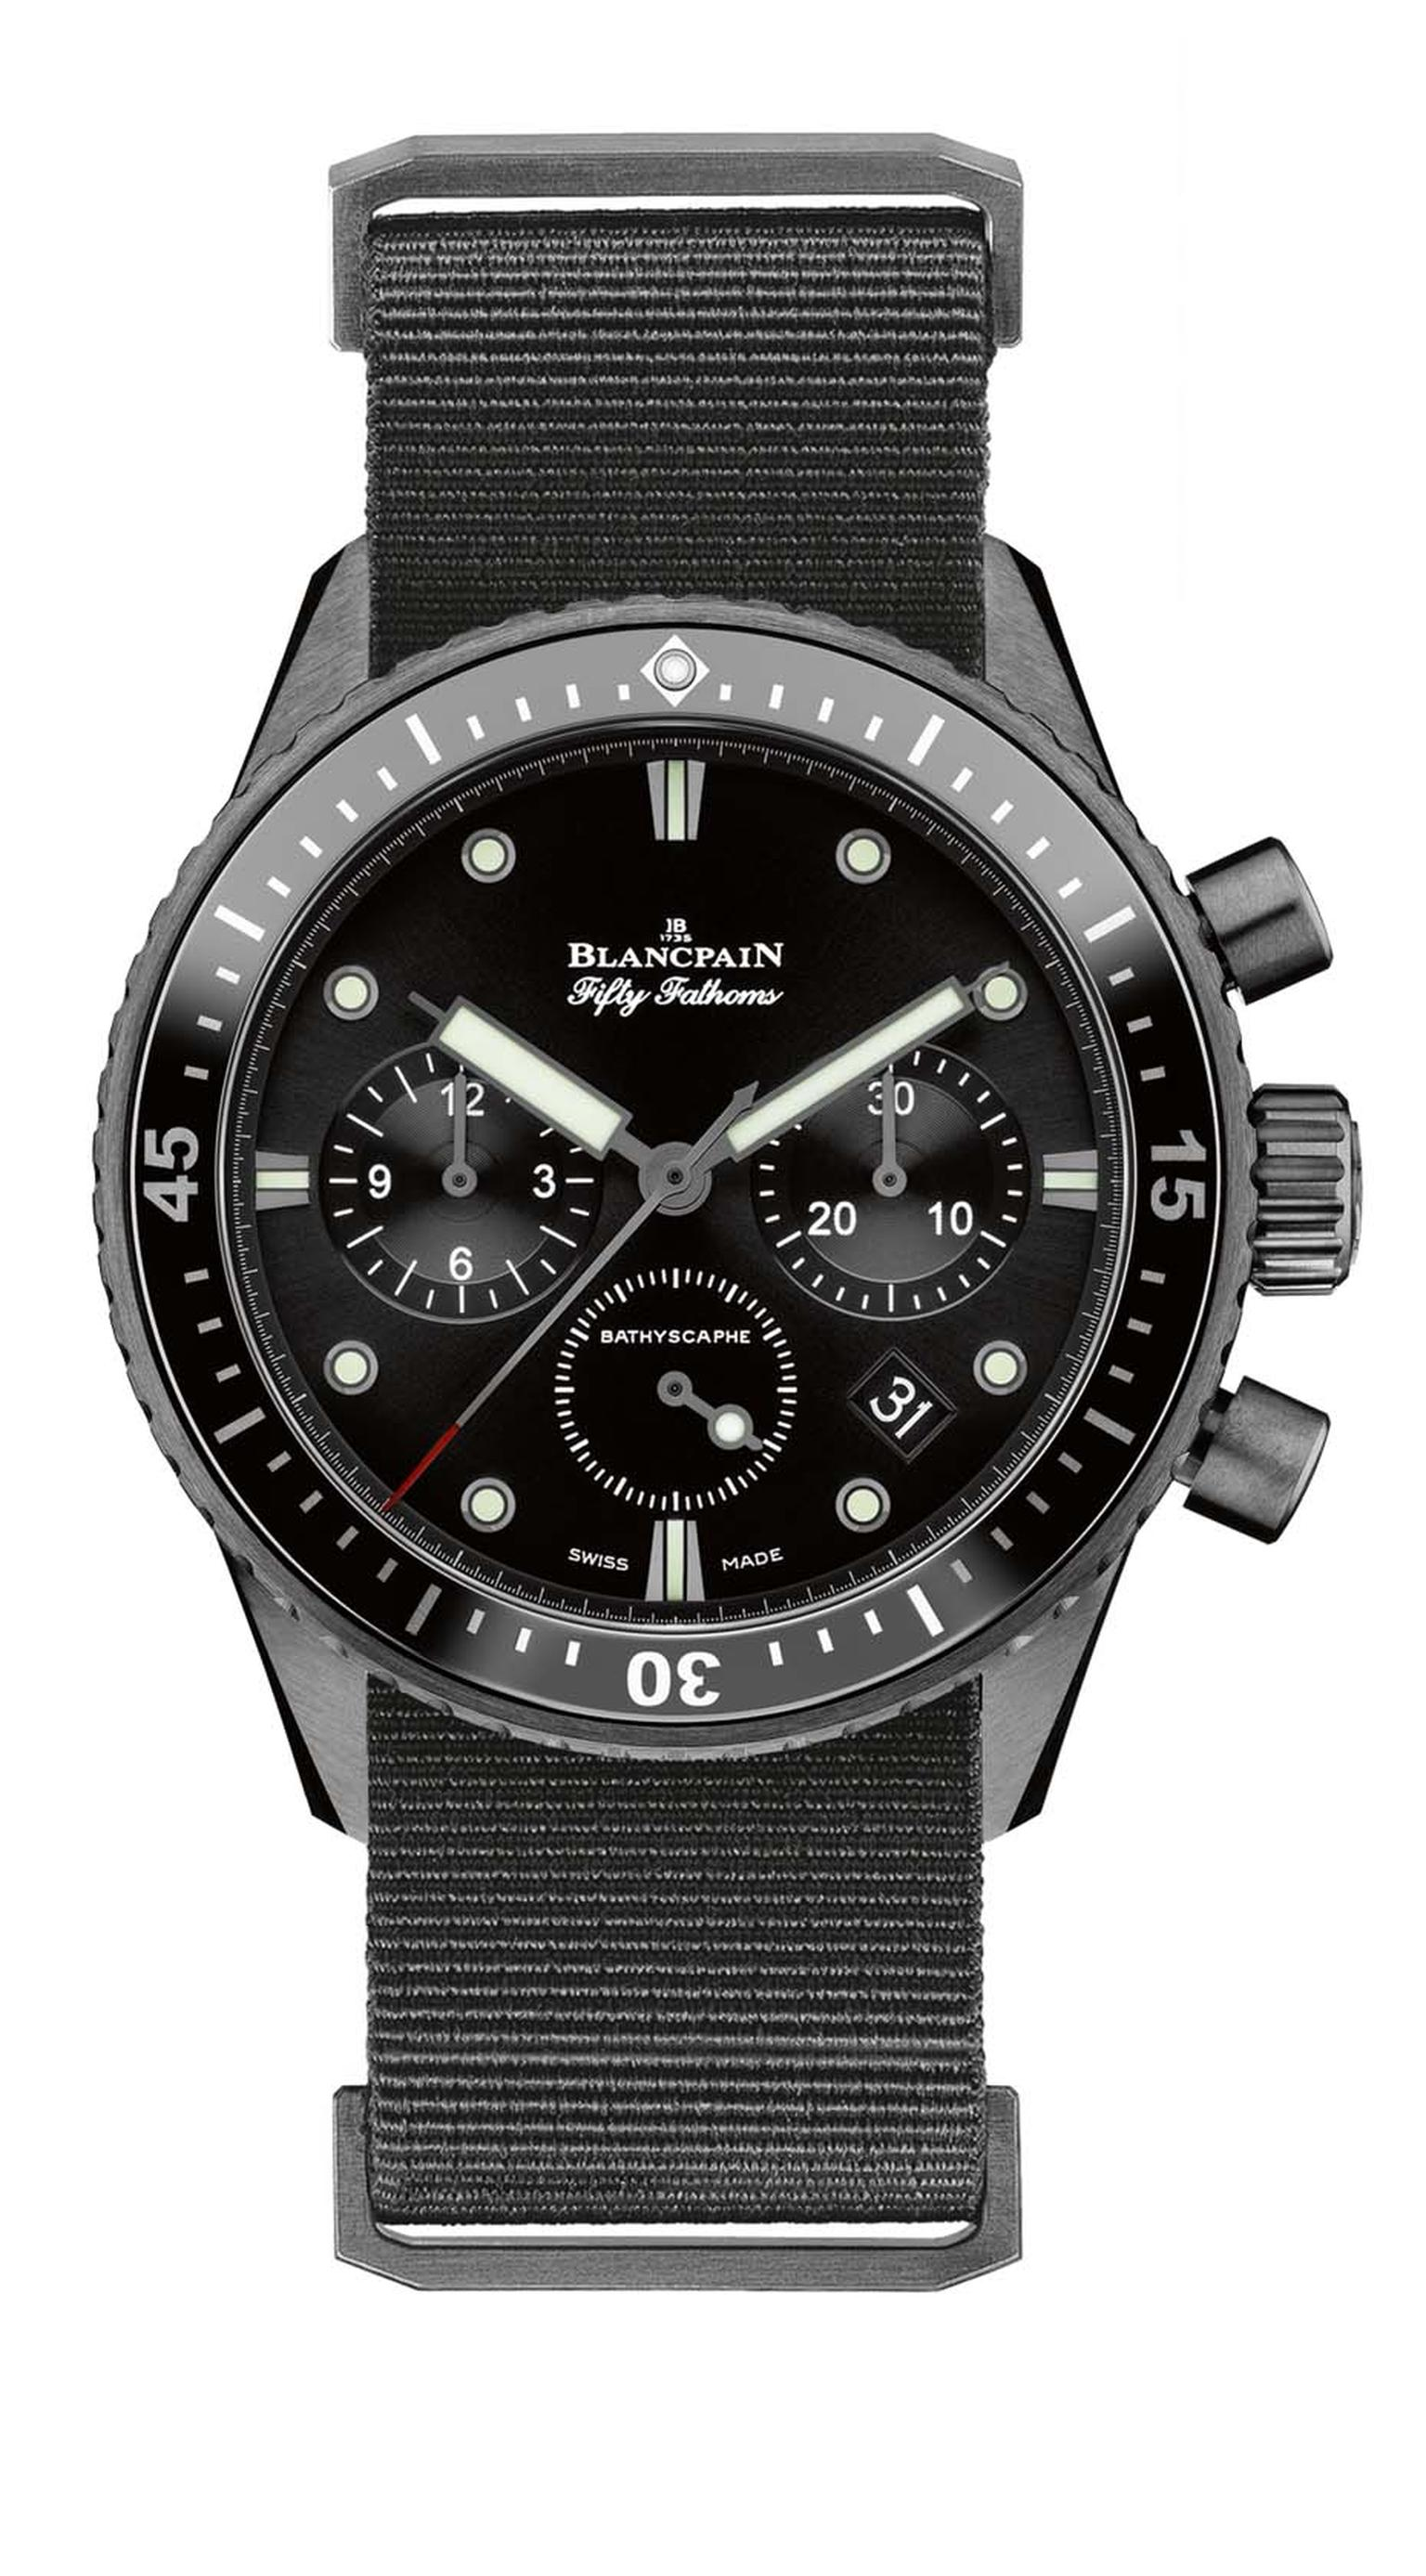 Originally designed for the French Navy, the Blancpain Fifty Fathoms Bathyscaphe Flyback Chronograph watch comes with a heavy-duty nylon NATO strap